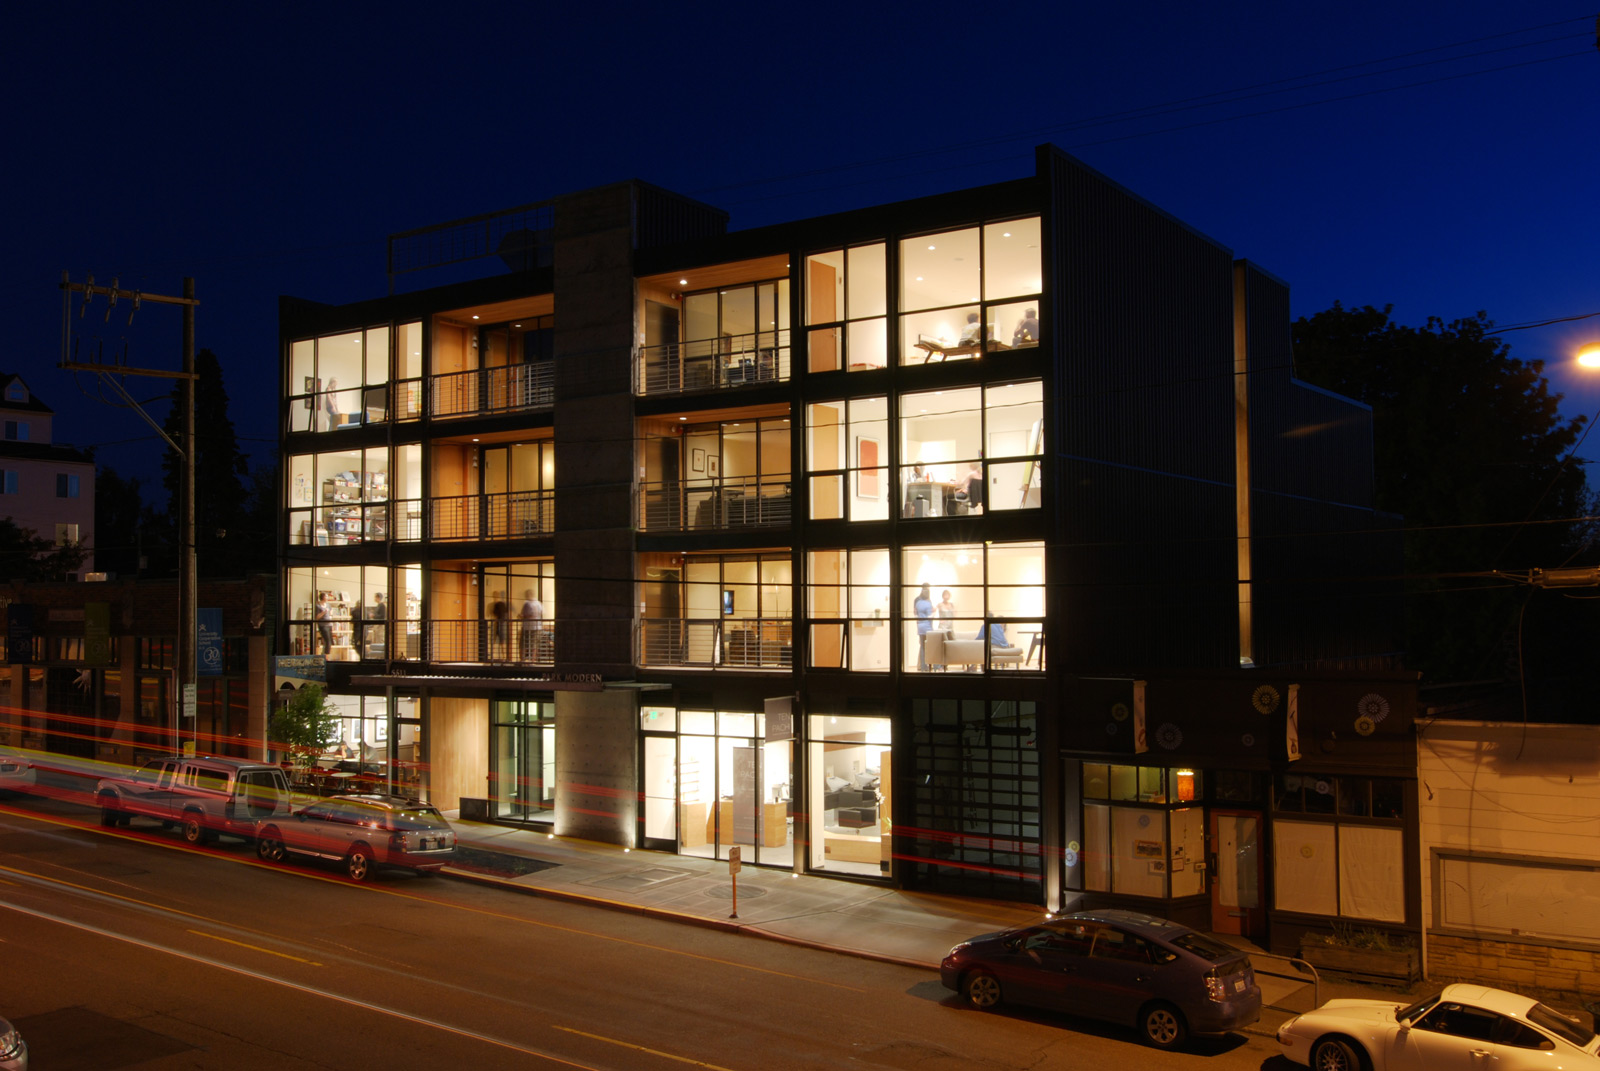 The process of commercial work build blog for Building exterior lighting design